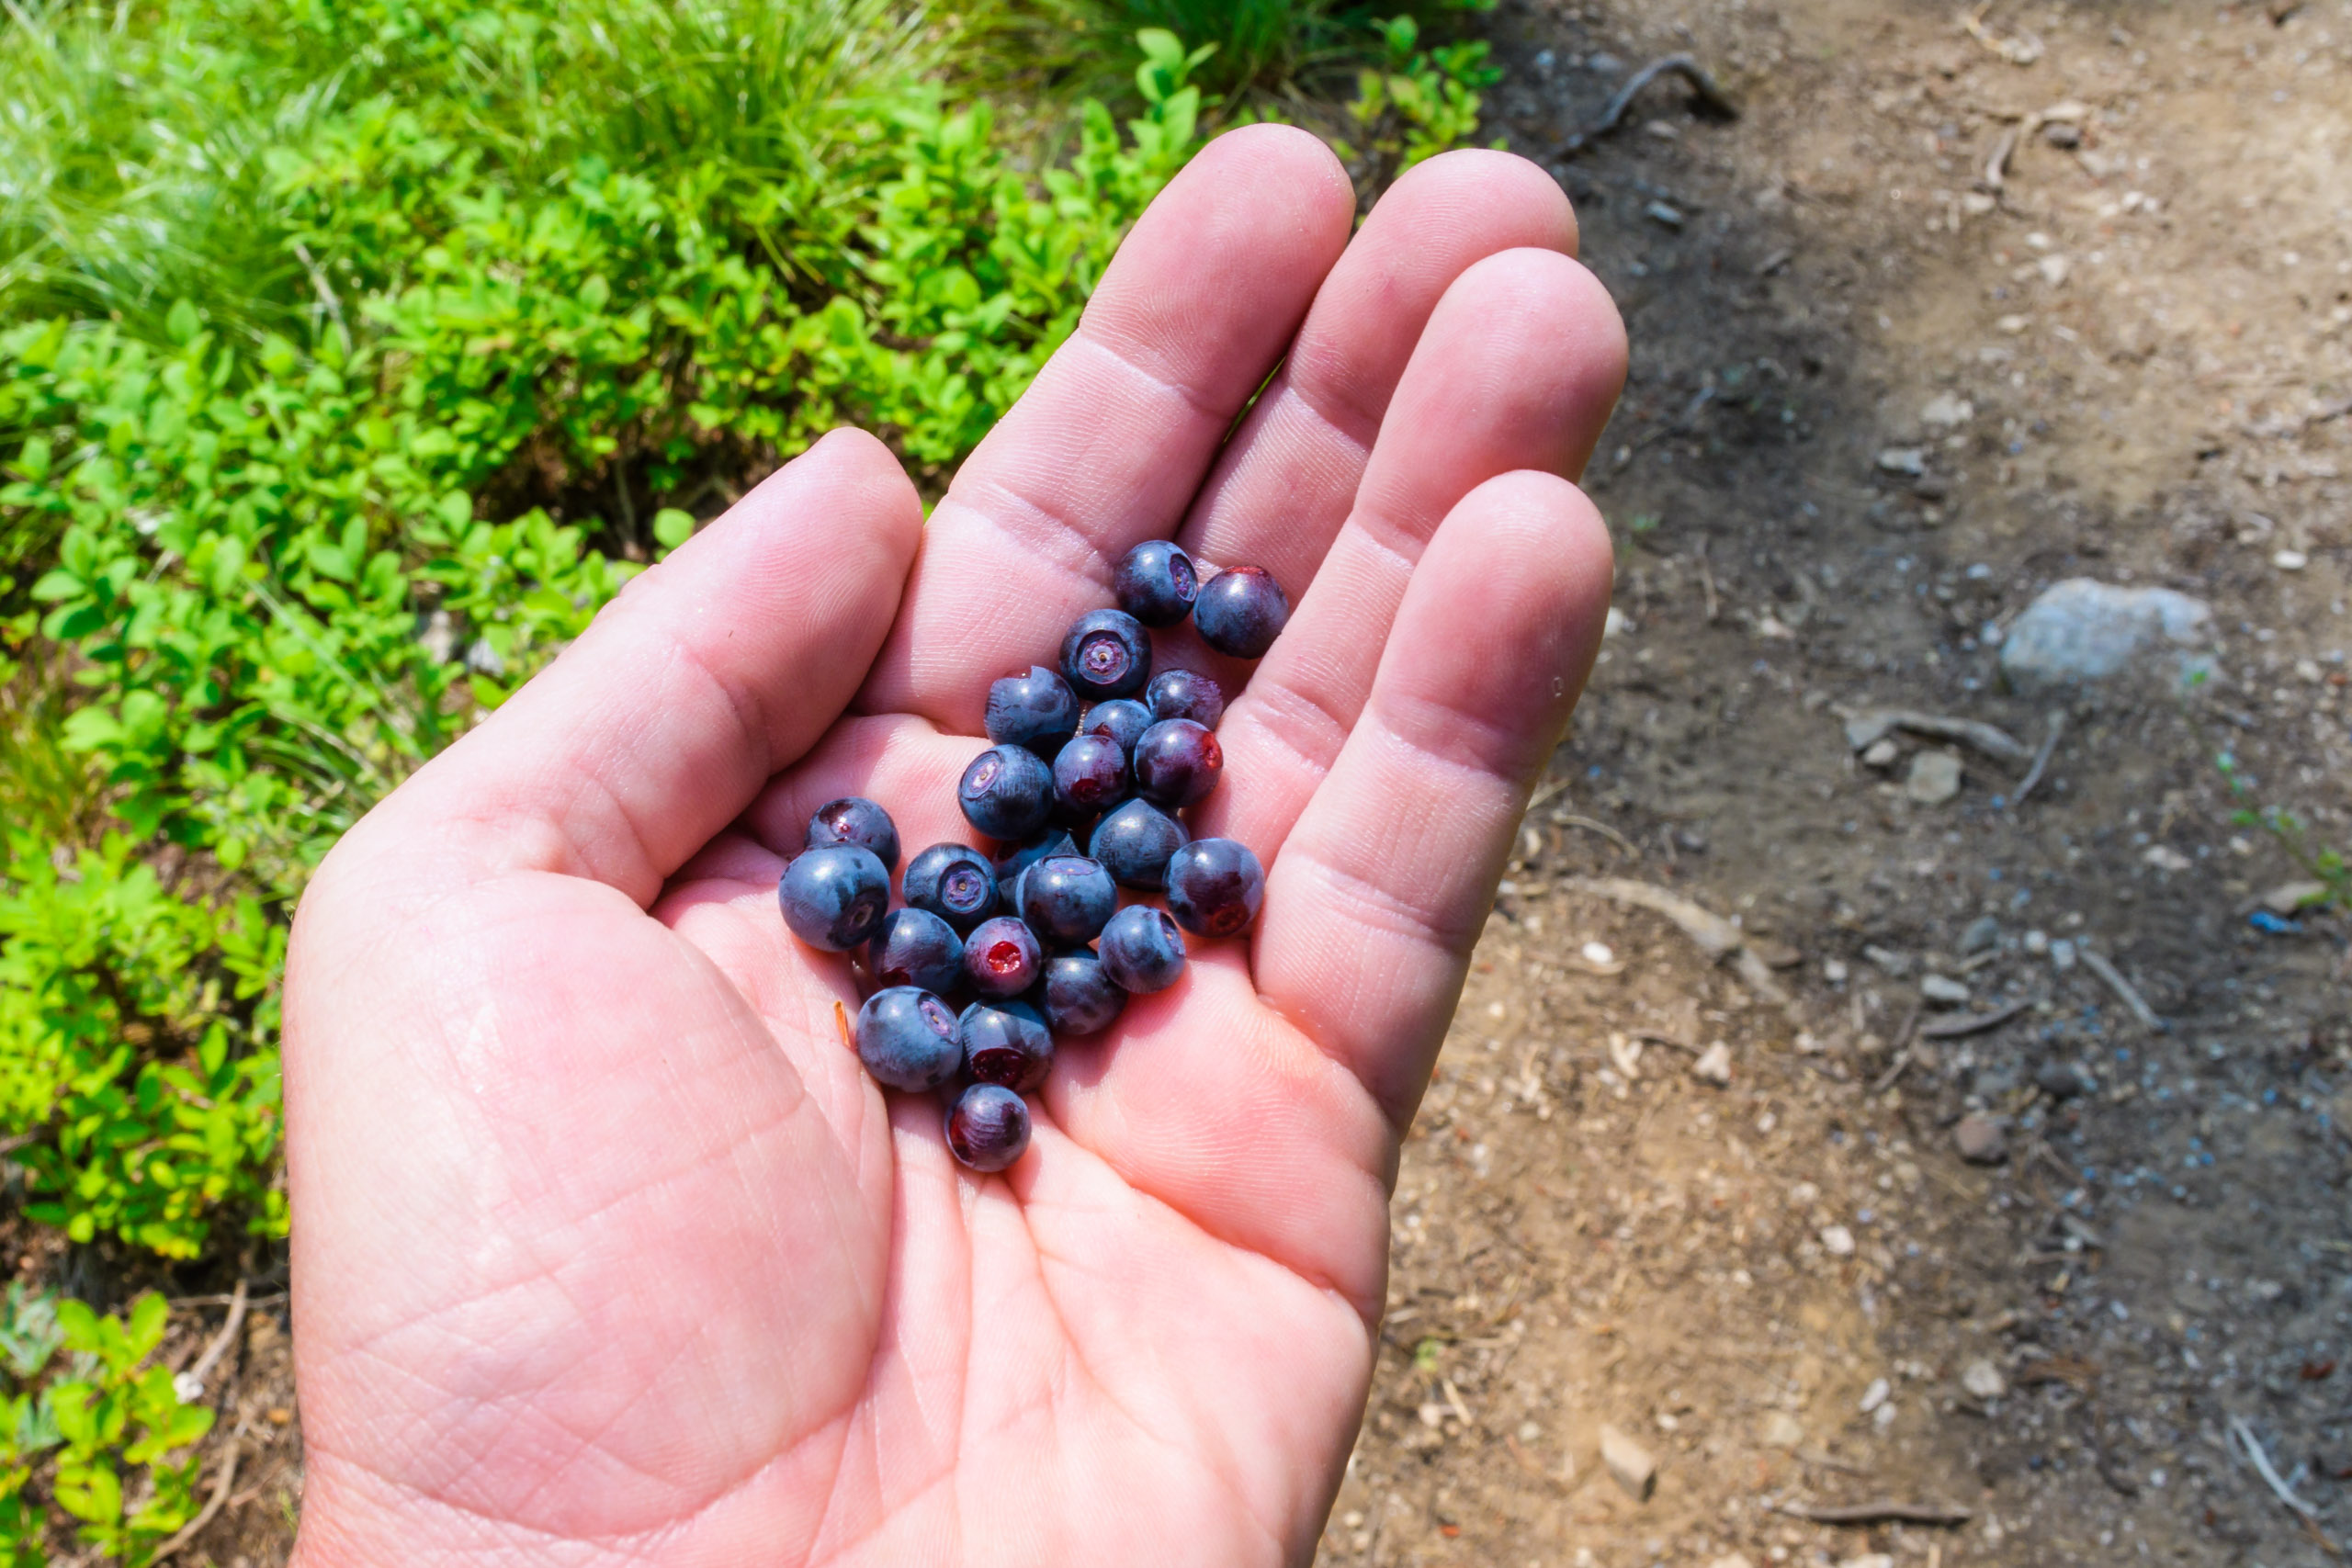 Huckleberries think in the hand